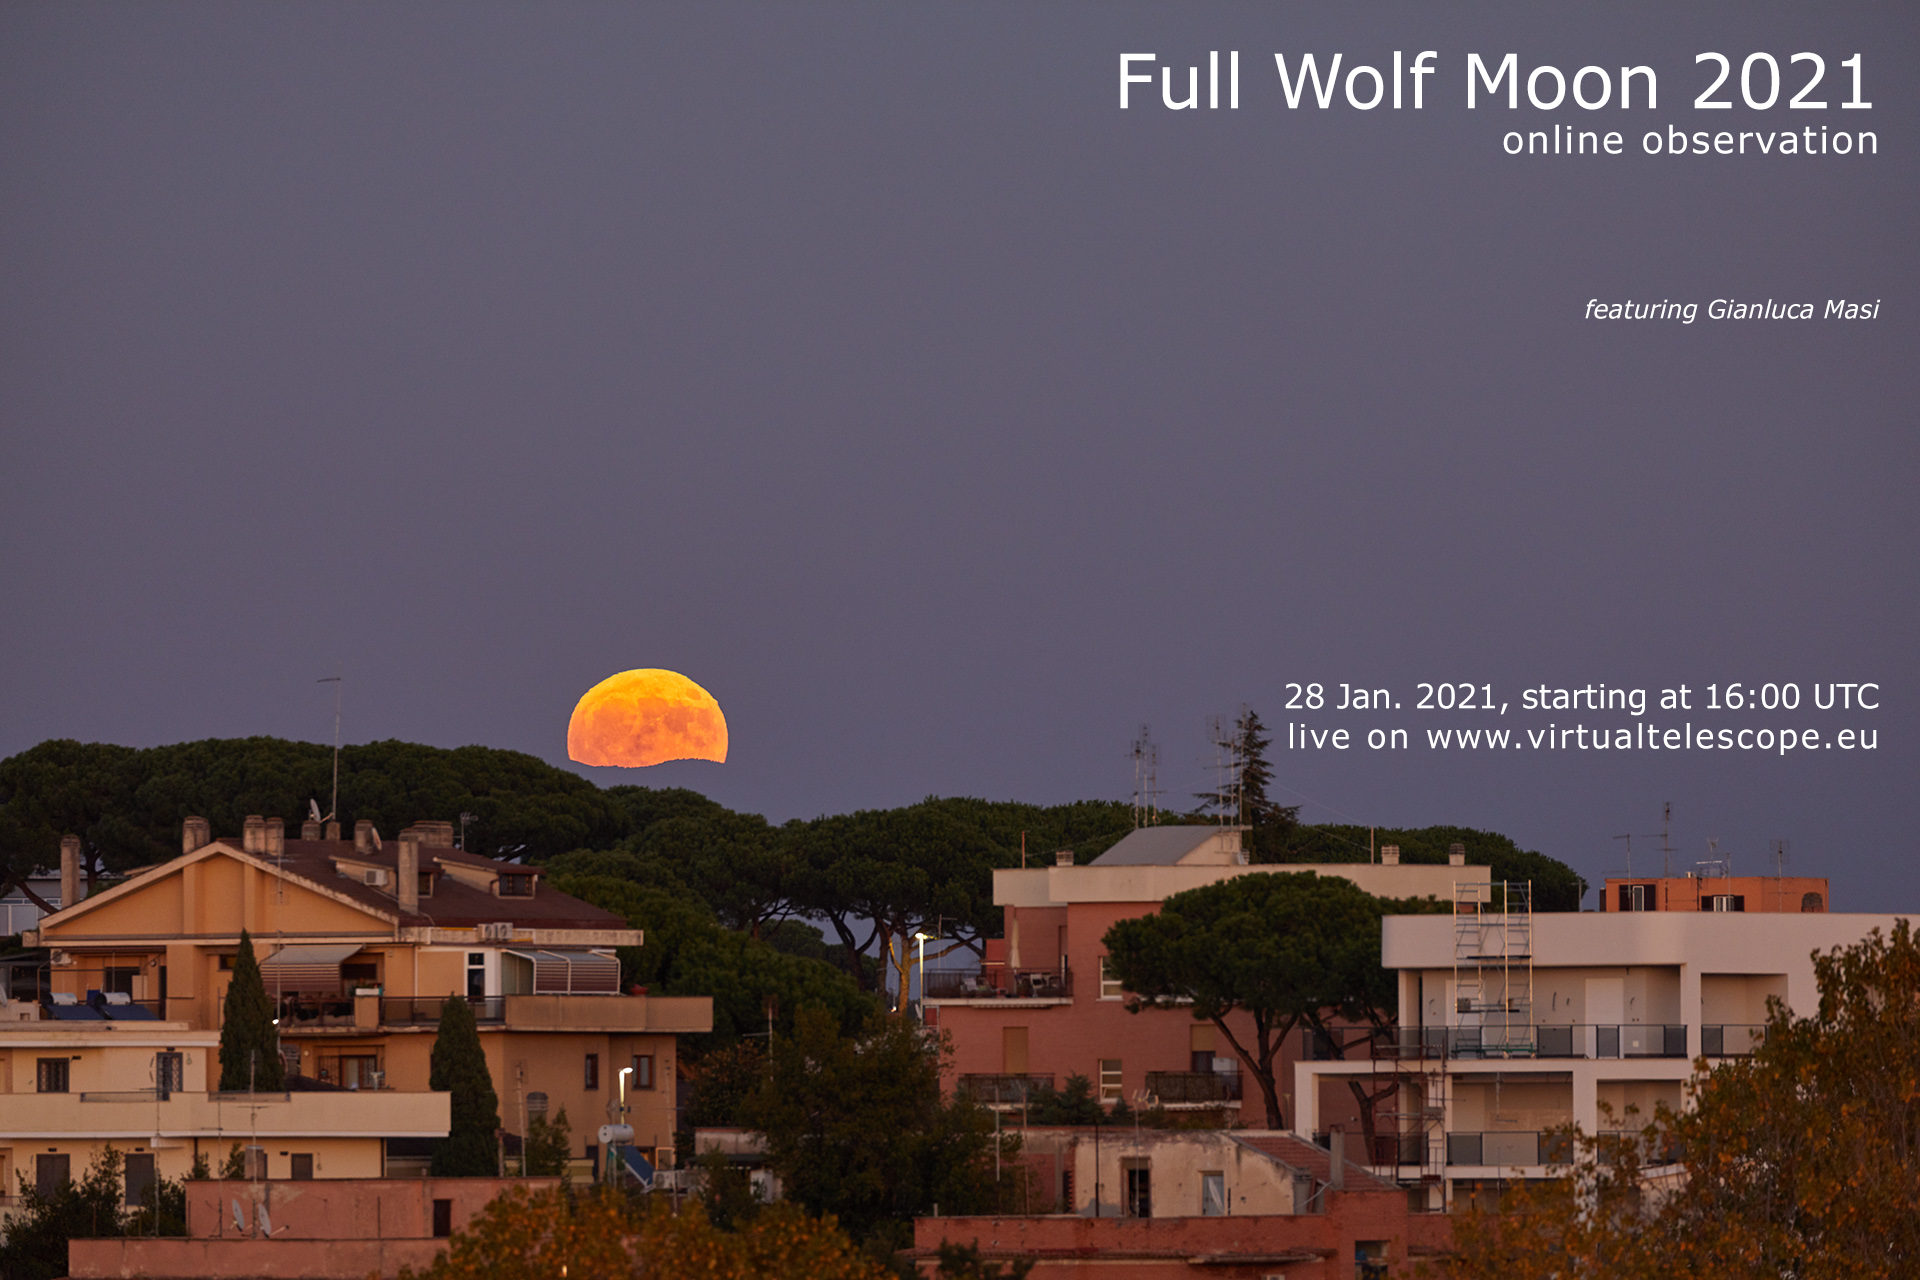 Full Wolf Moon 2021: poster of the event